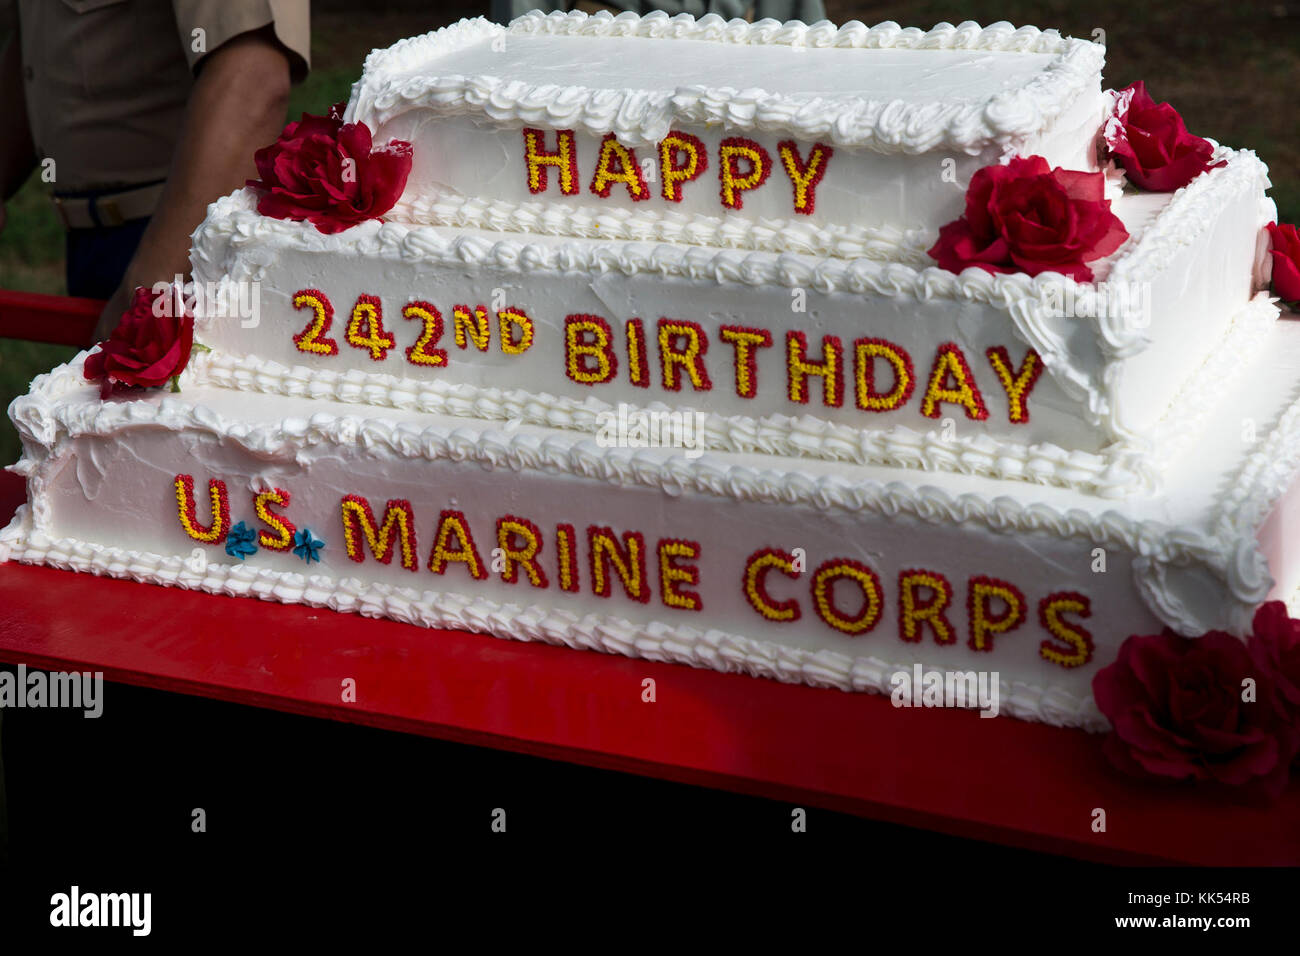 The Birthday Cake Is A Ceremonial Element Of The Annual Us Marine